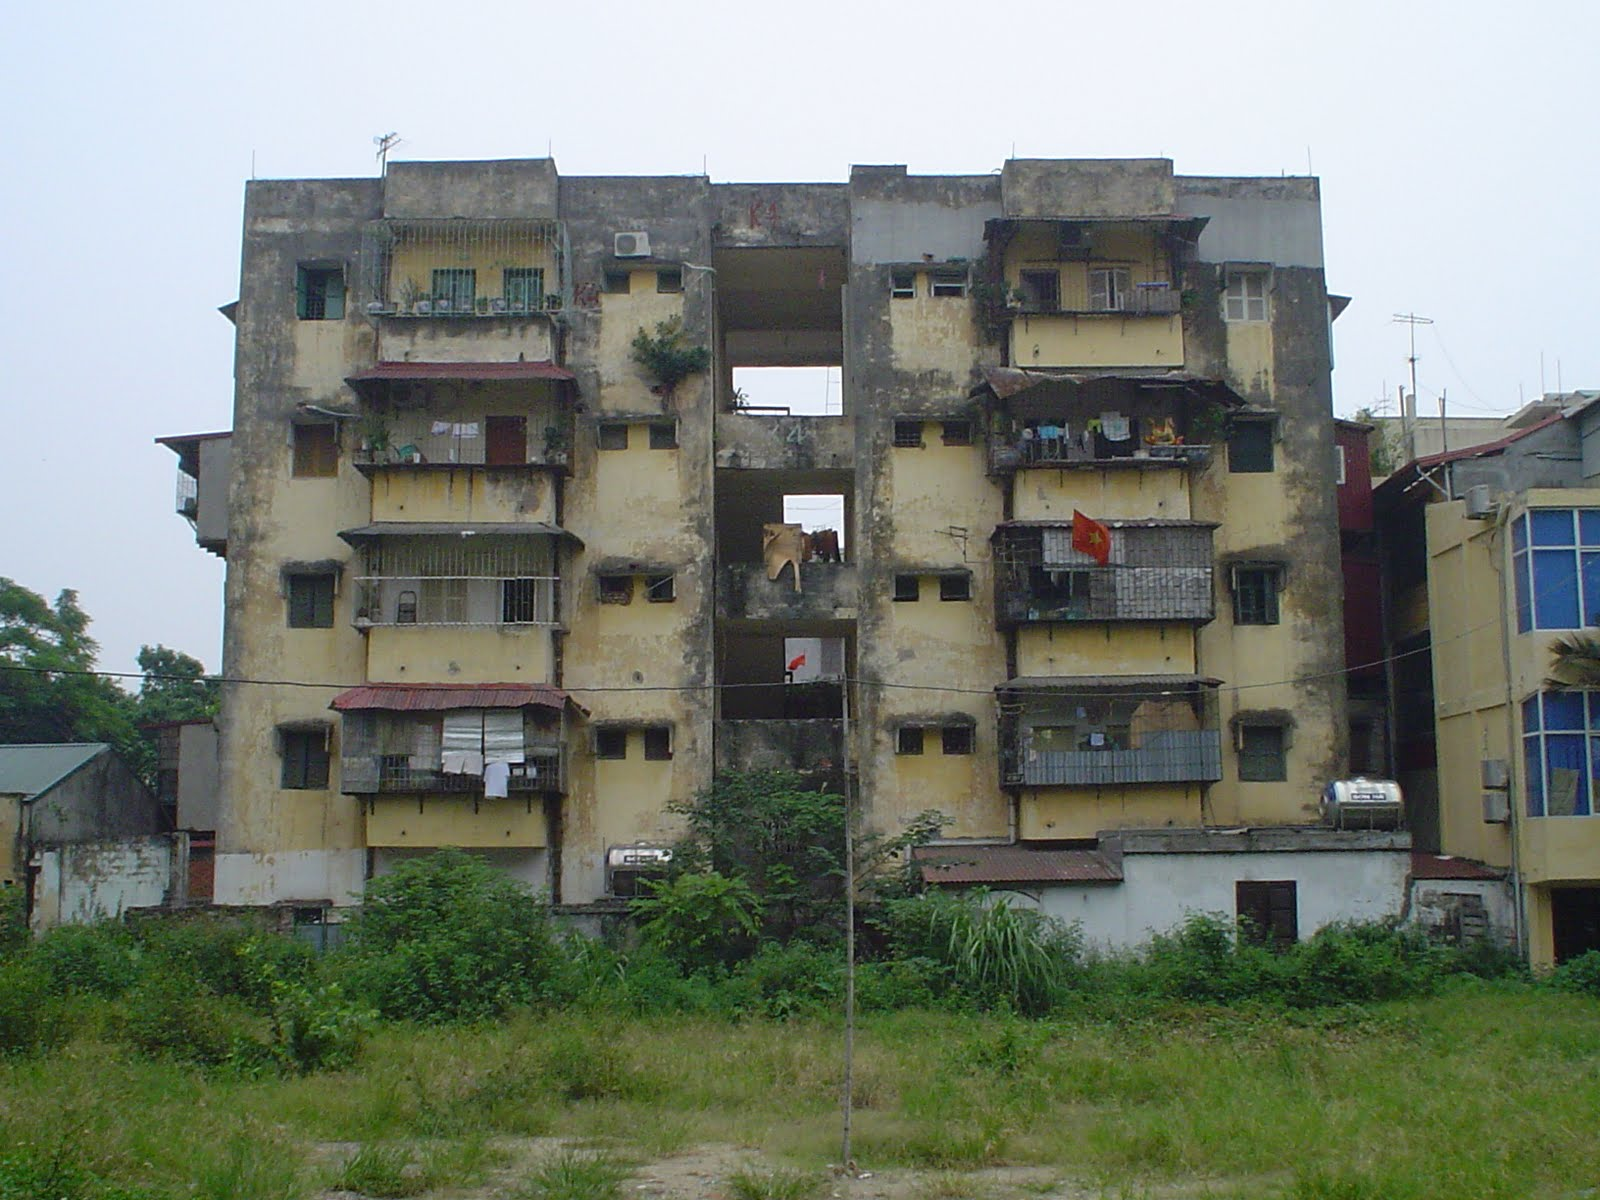 Outskirt building in Hanoi Vietnam. Pictures Hanoi   Vietnam   Guide of Vietnam   Vietnam Blog   Vietnam